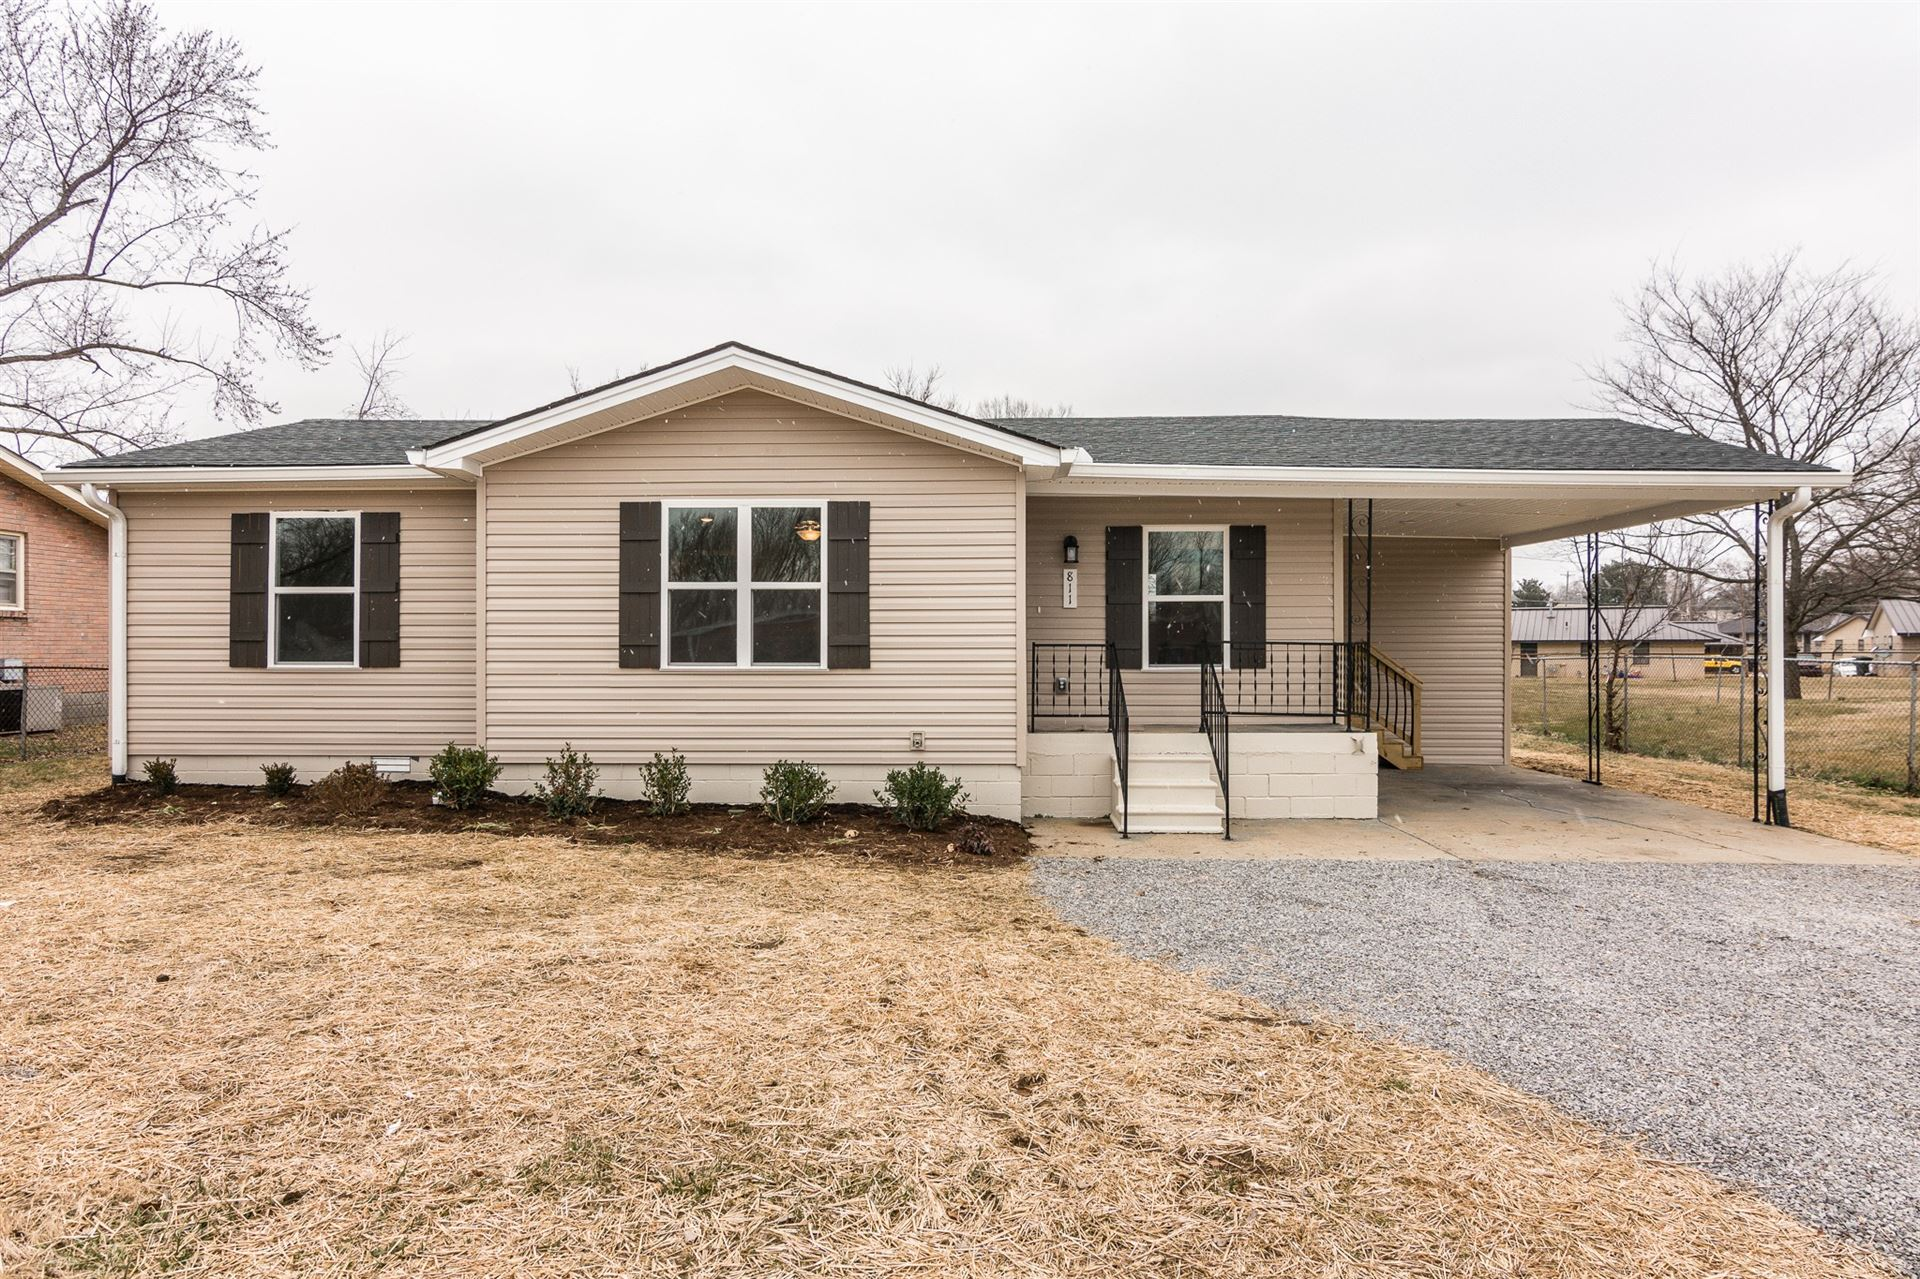 811 Ms Couts Blvd, Springfield, TN 37172 - MLS#: 2219689